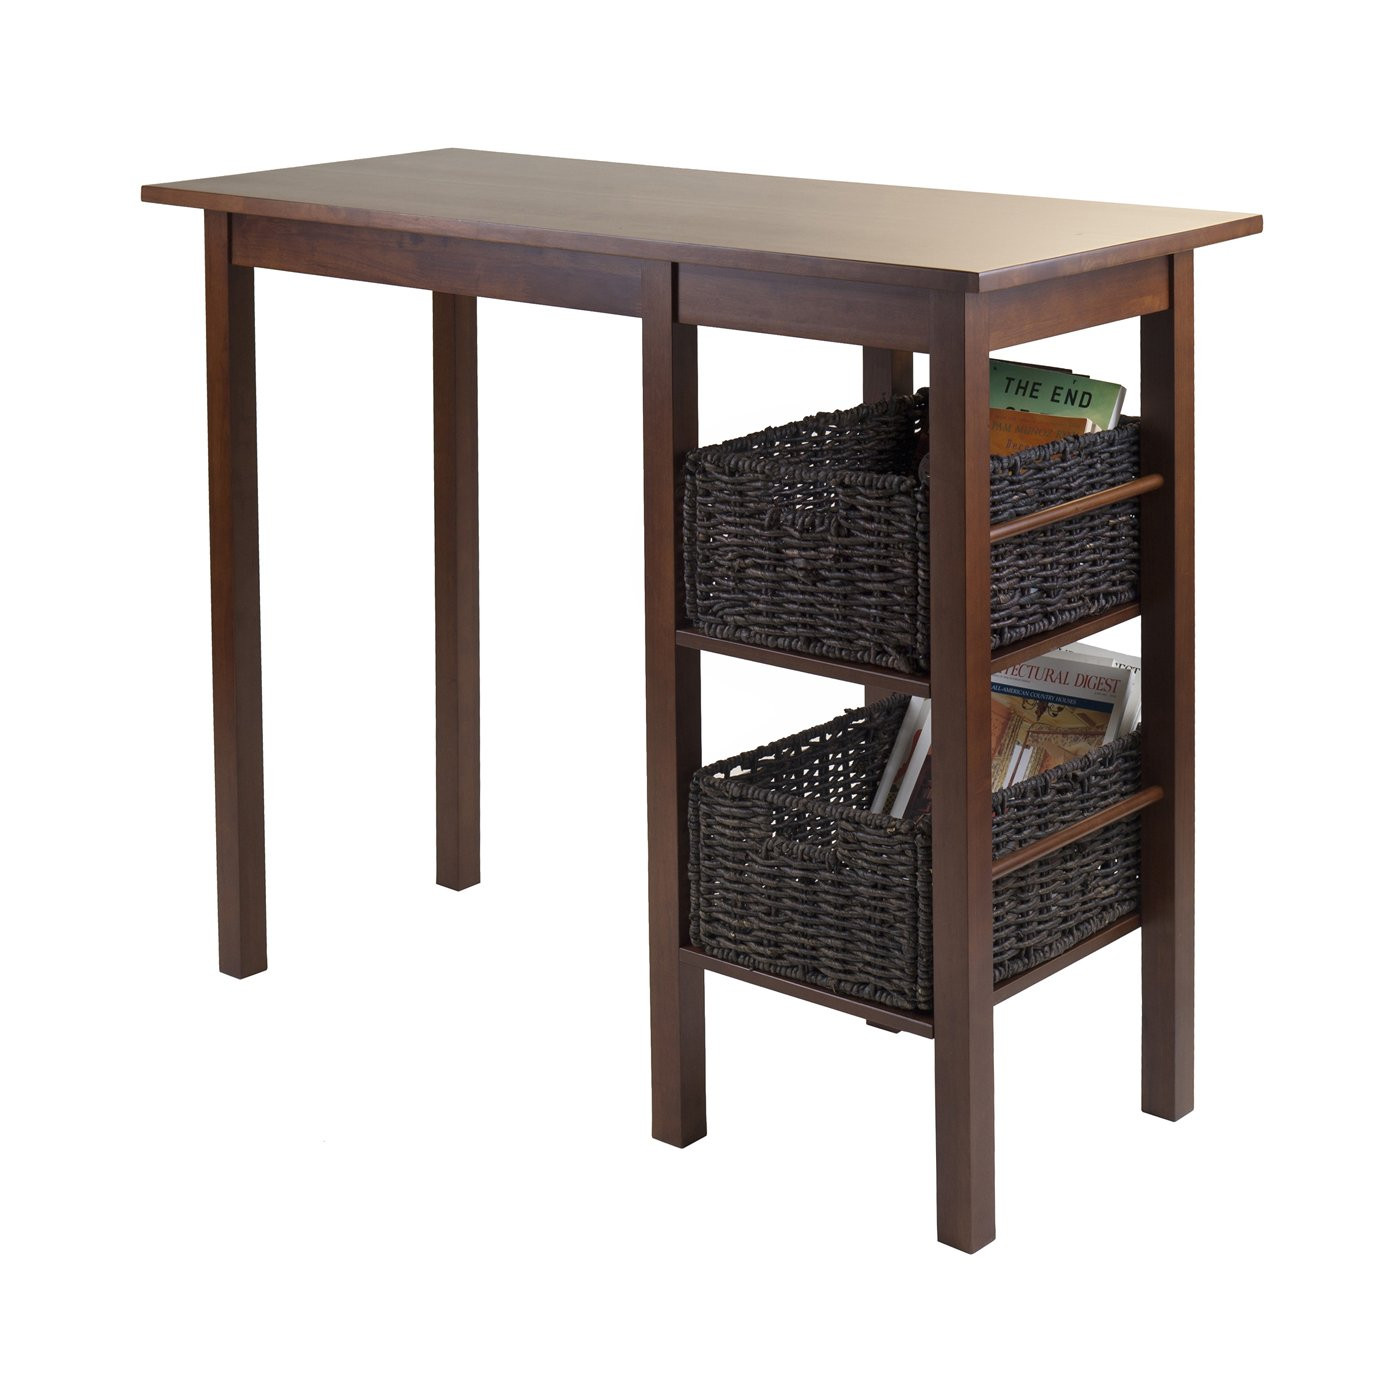 Best ideas about Dining Table With Storage . Save or Pin Winsome Wood Egan Storage Breakfast Table Now.